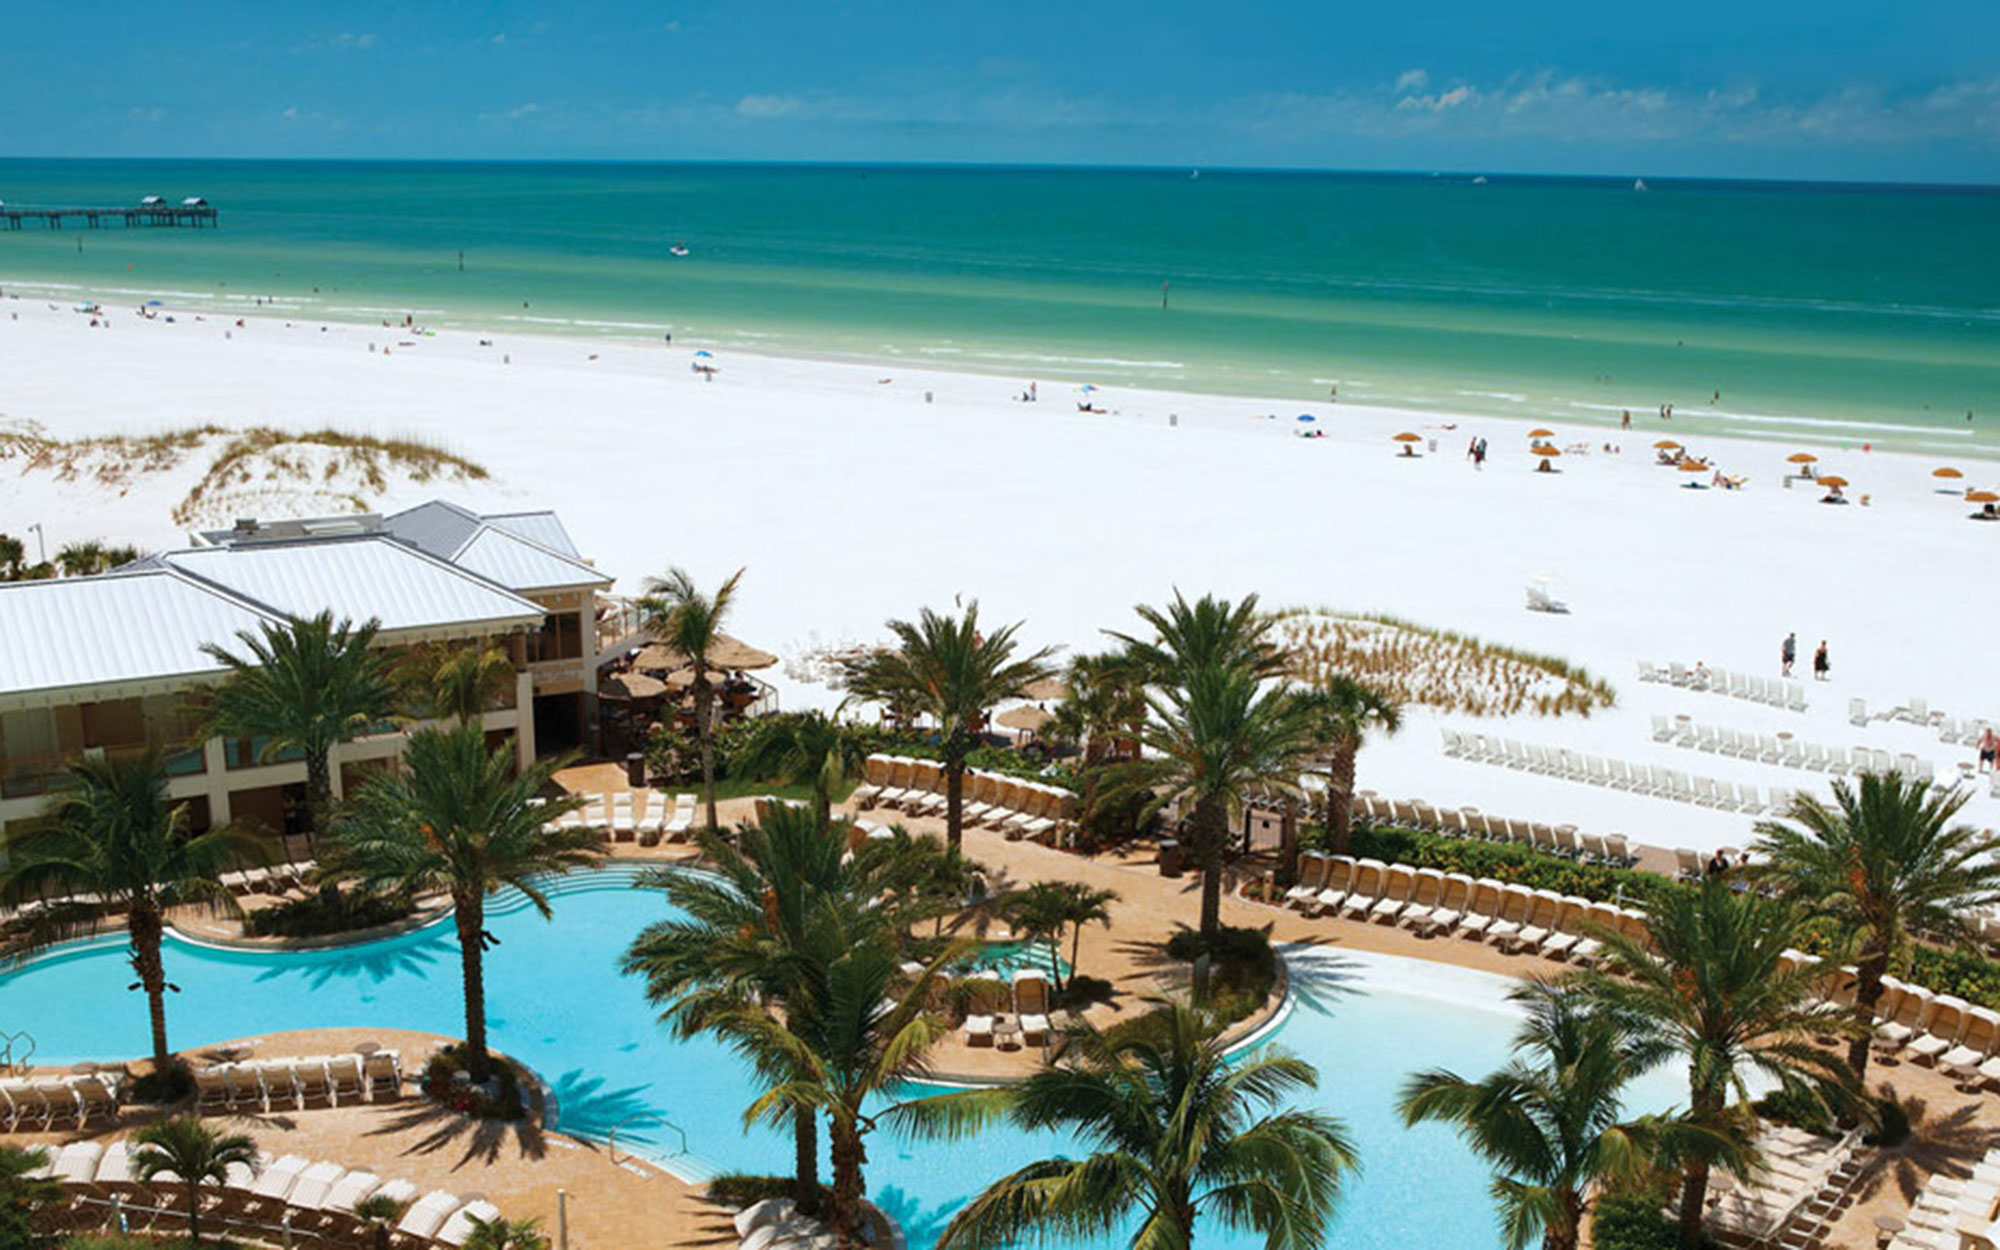 Best Resorts in the Continental U.S.: Sandpearl Resort Clearwater Beach, Florida